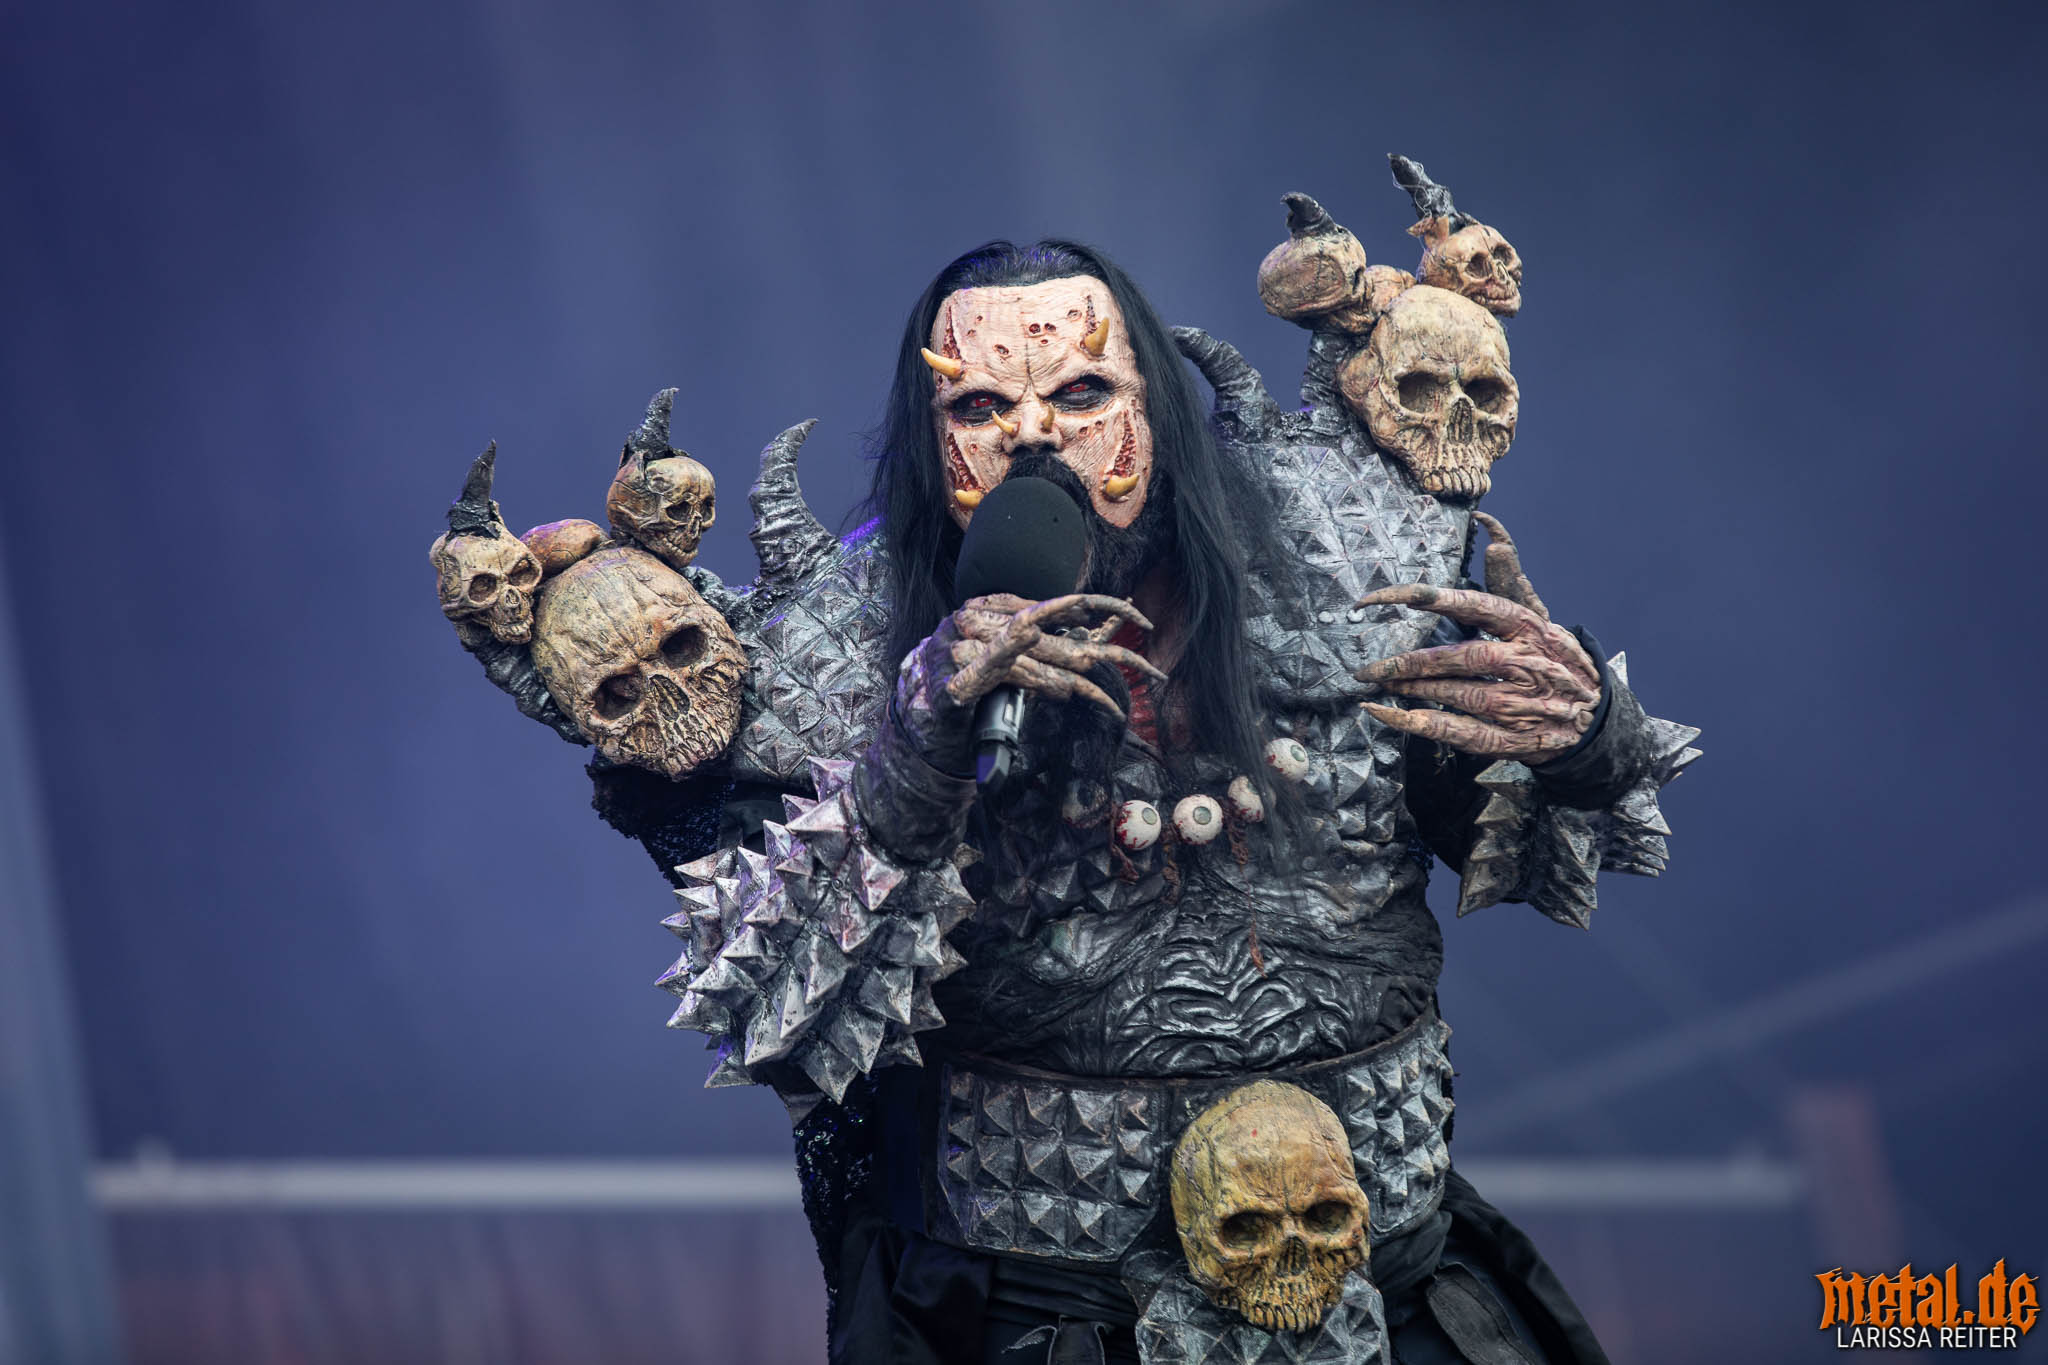 Konzertfoto von Lordi - Summer Breeze Open Air 2019